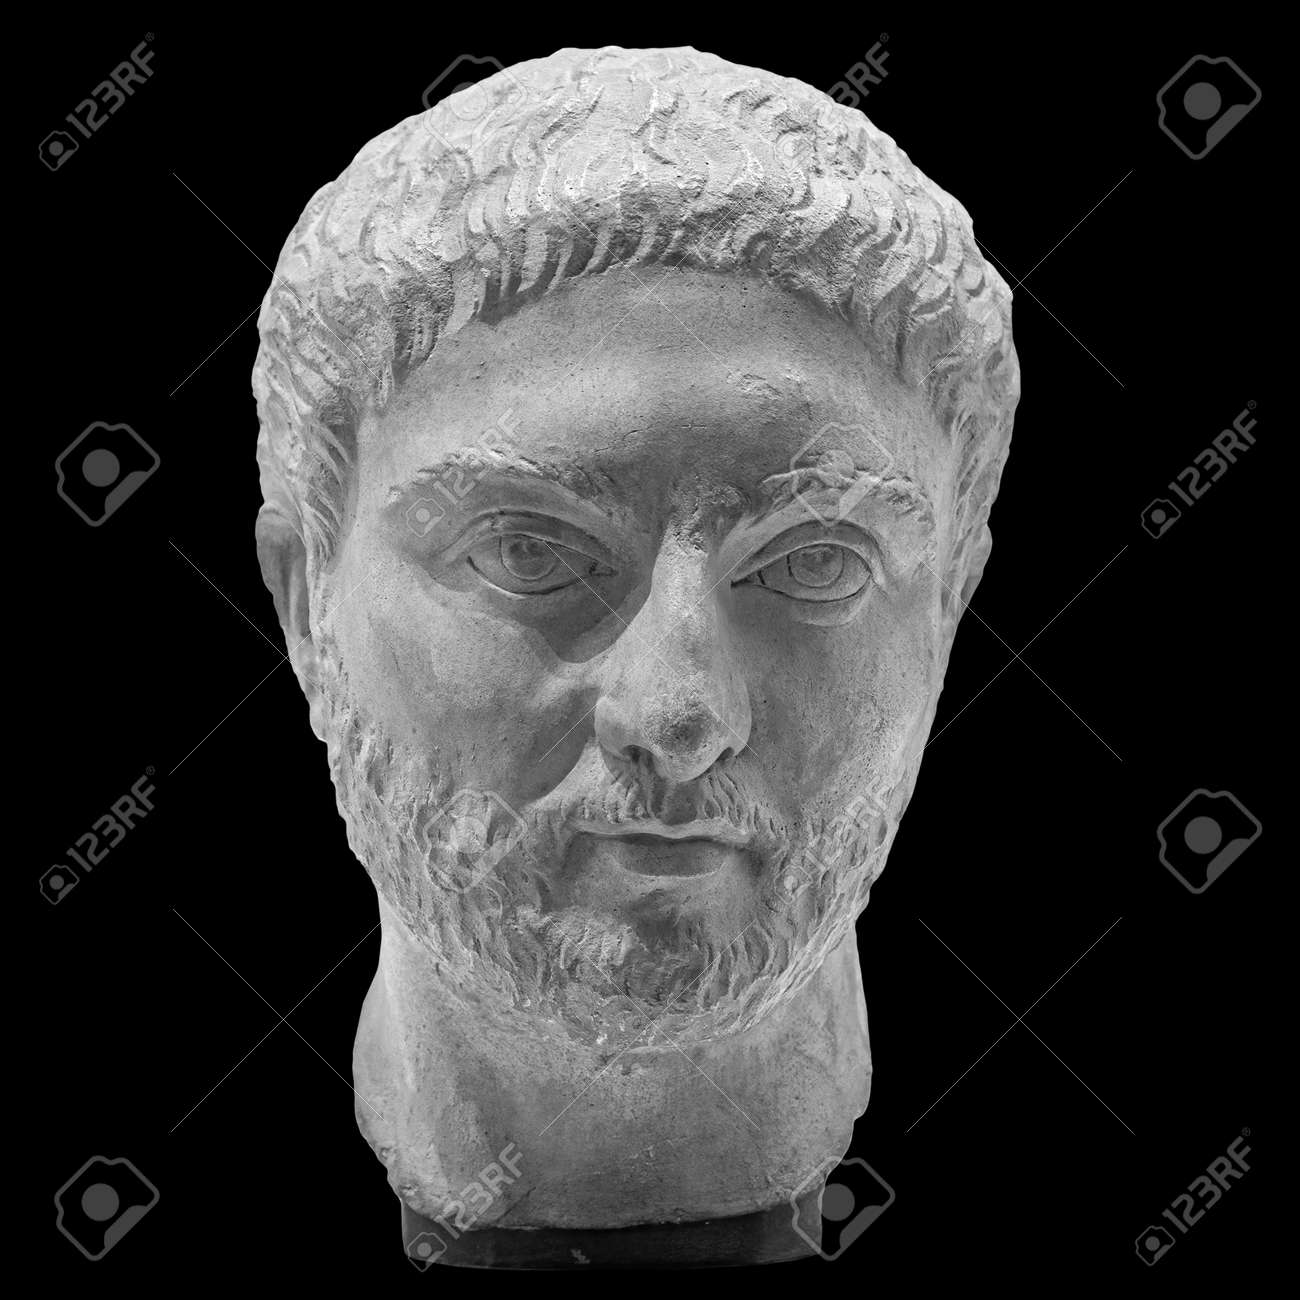 Gypsum copy of ancient statue man with beard head isolated on black background. Plaster sculpture man face - 169669231